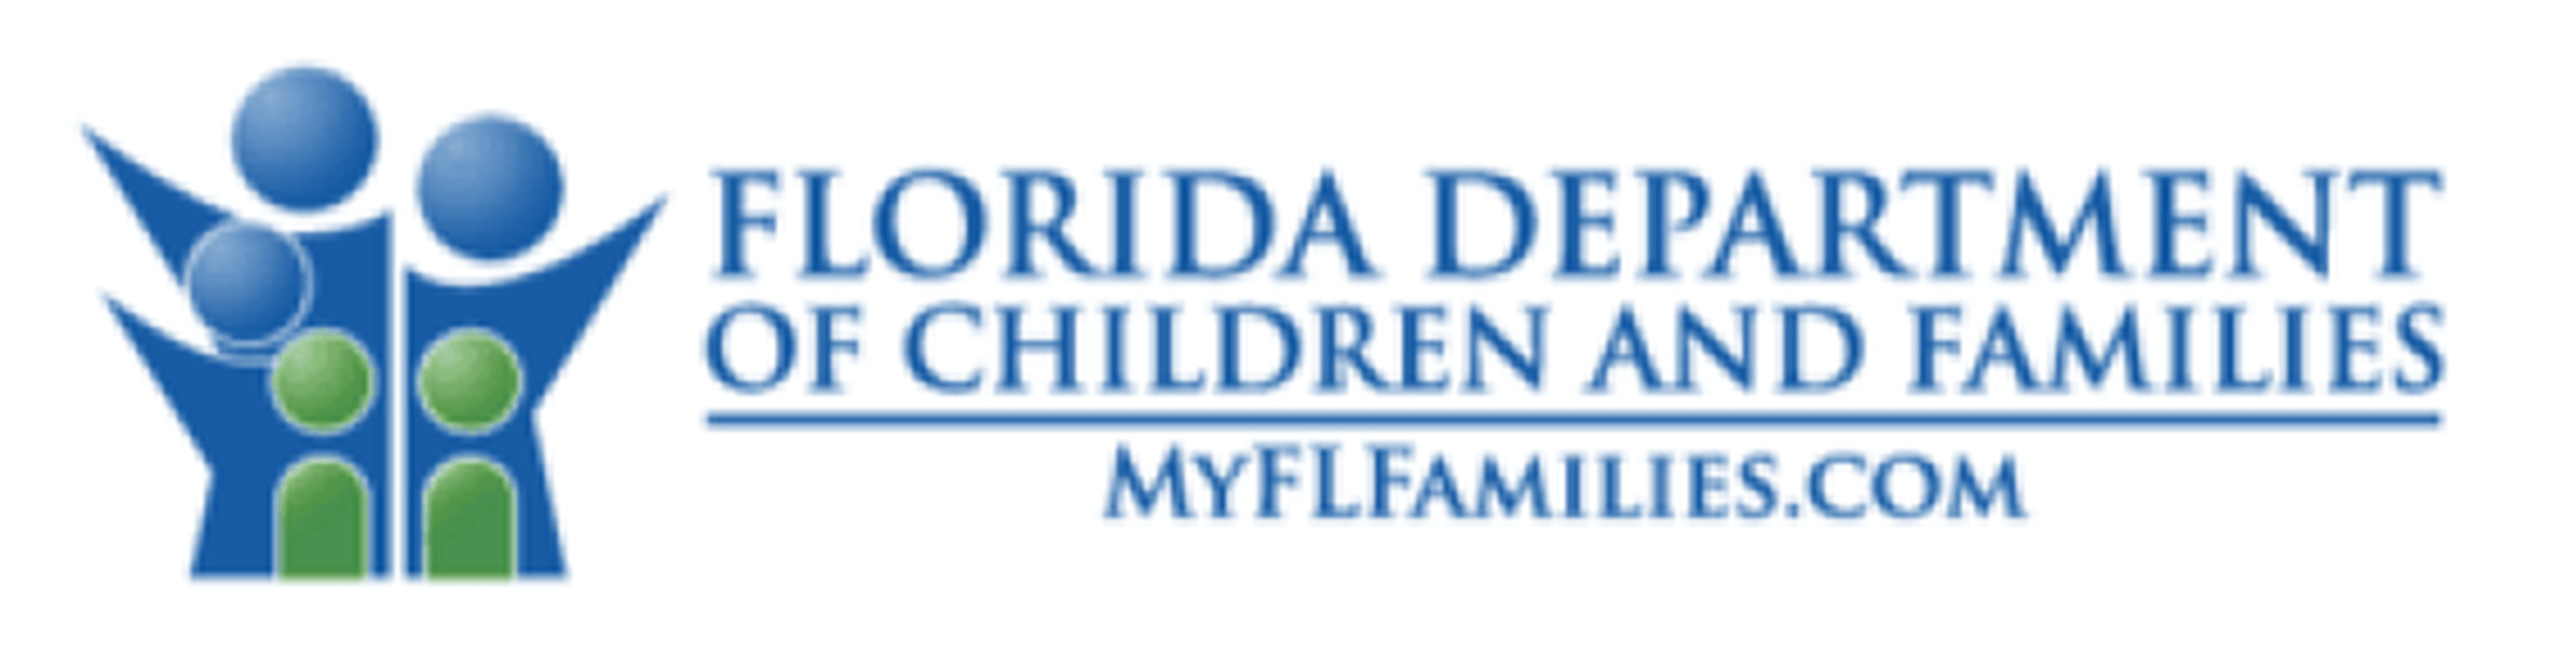 florida-department-logo